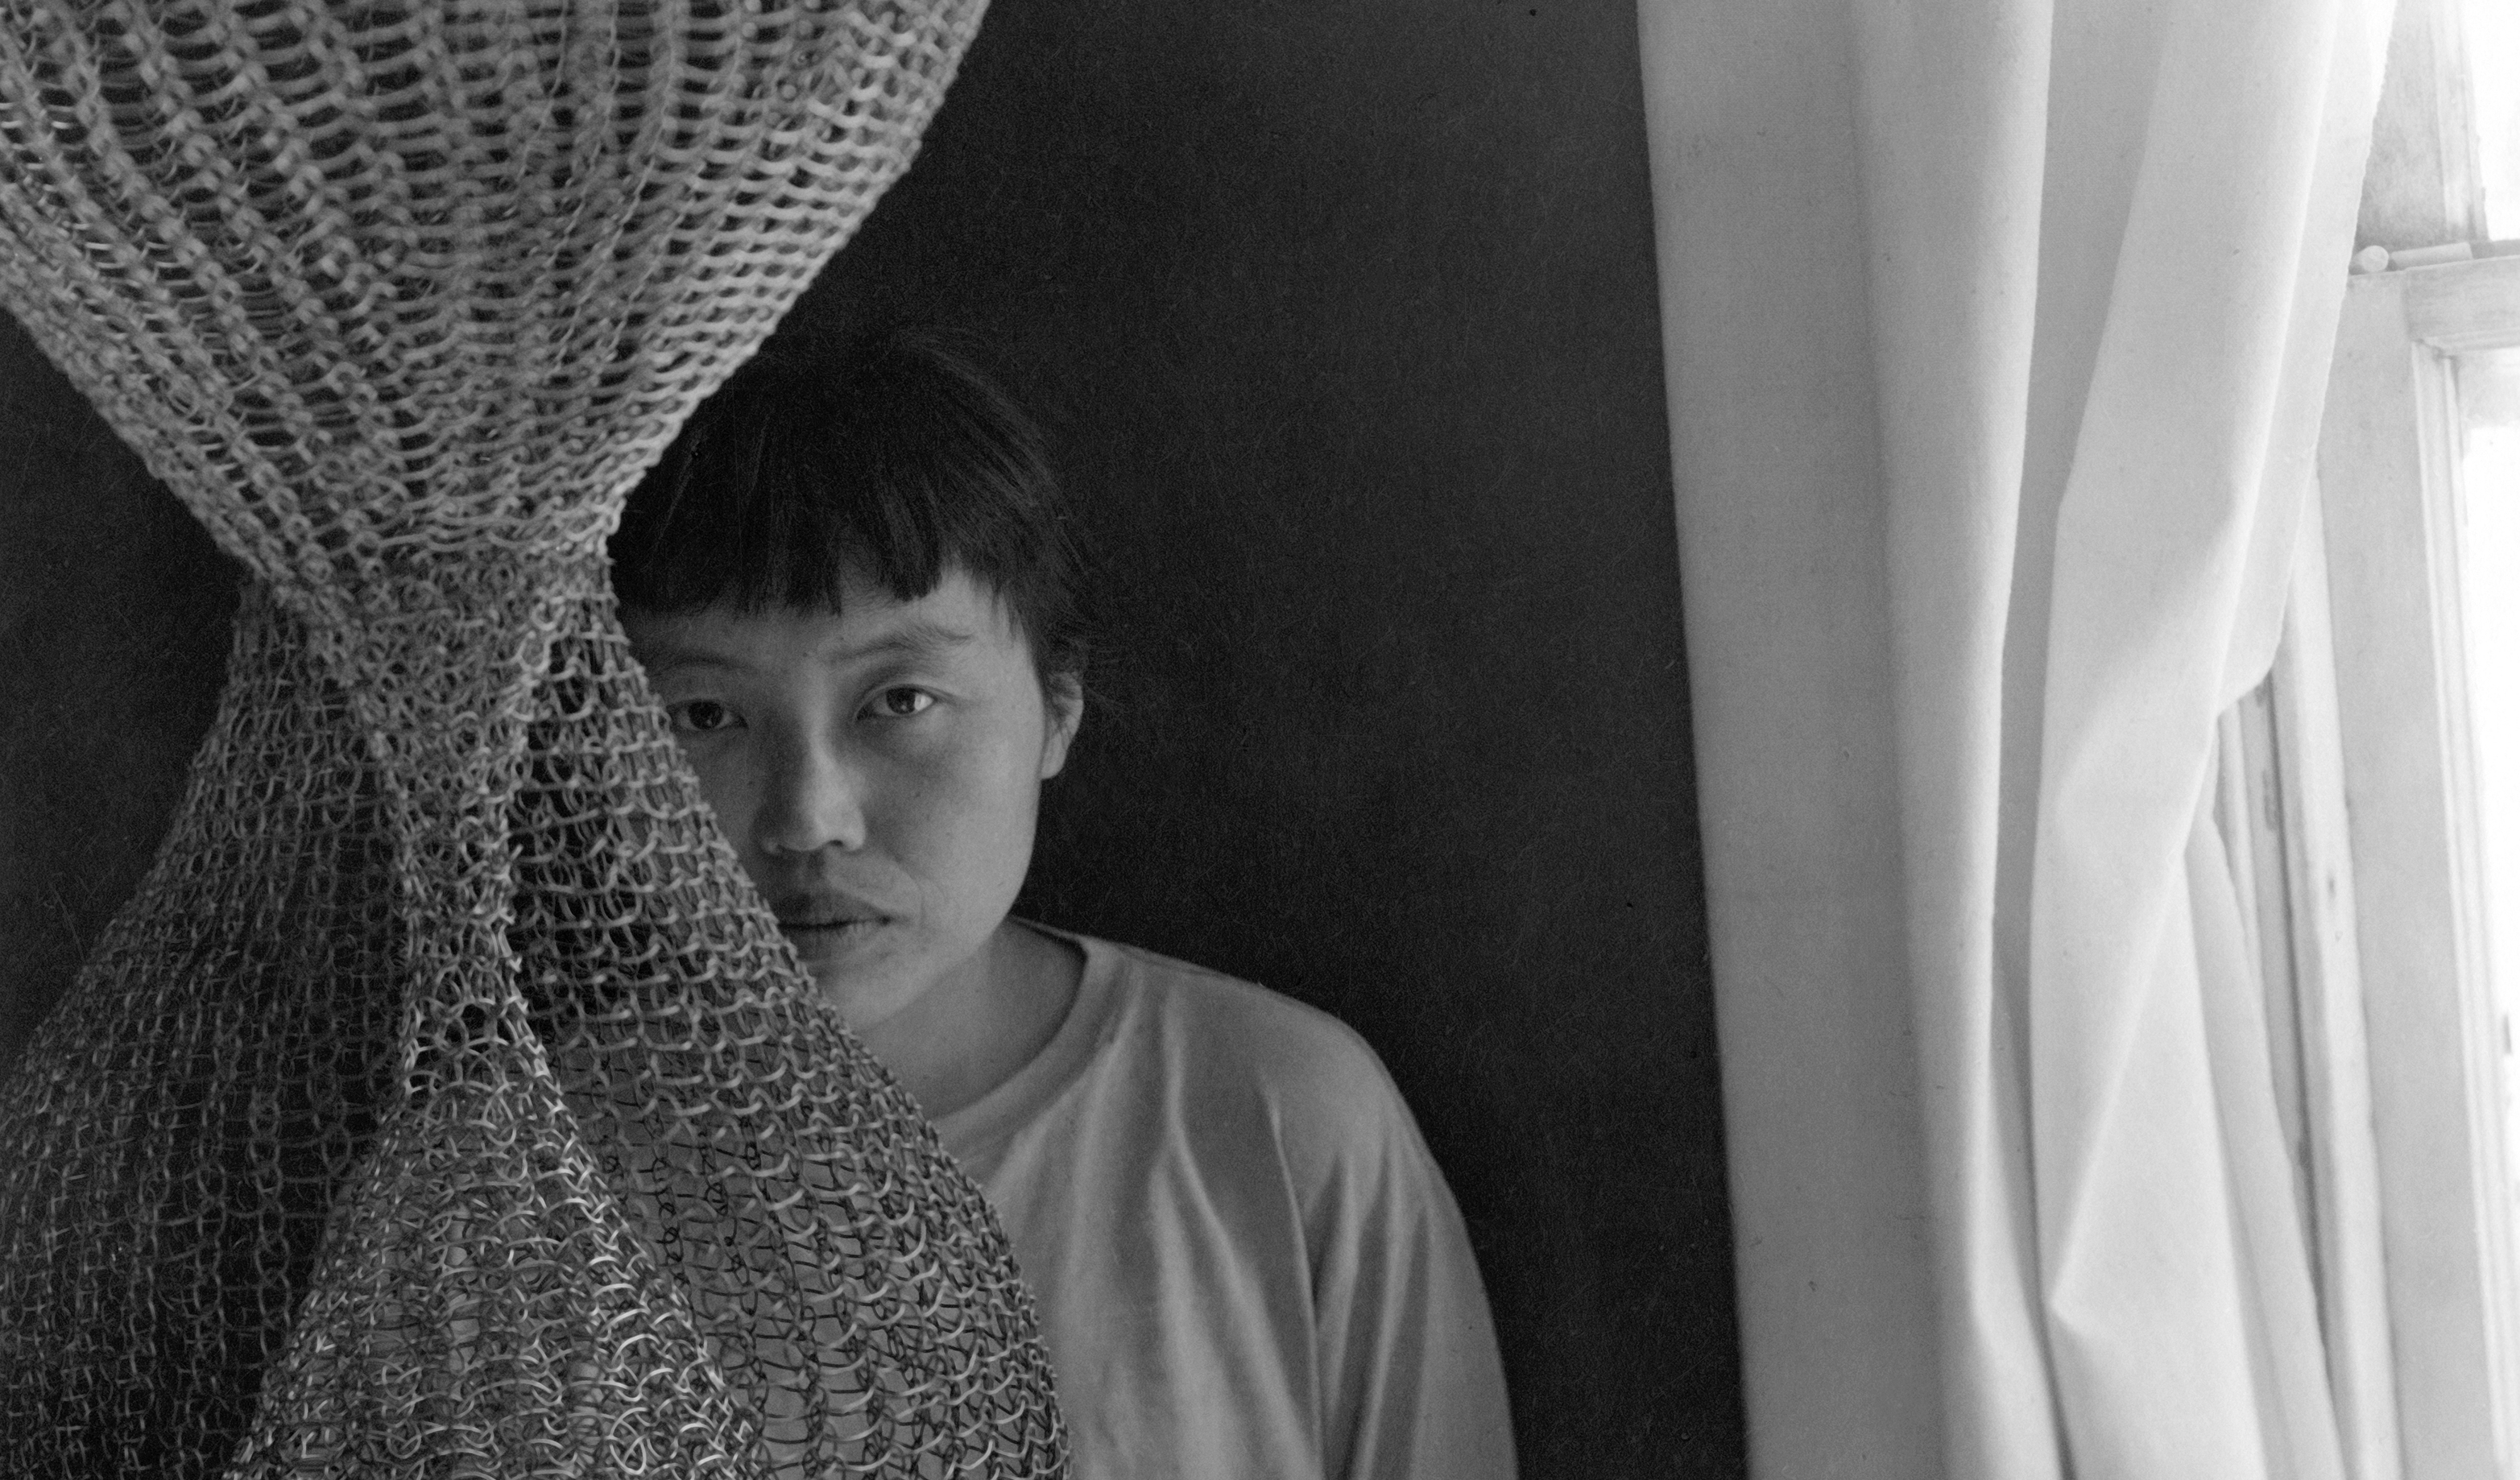 A detail of a photograph of Ruth Asawa, dated 1950s.